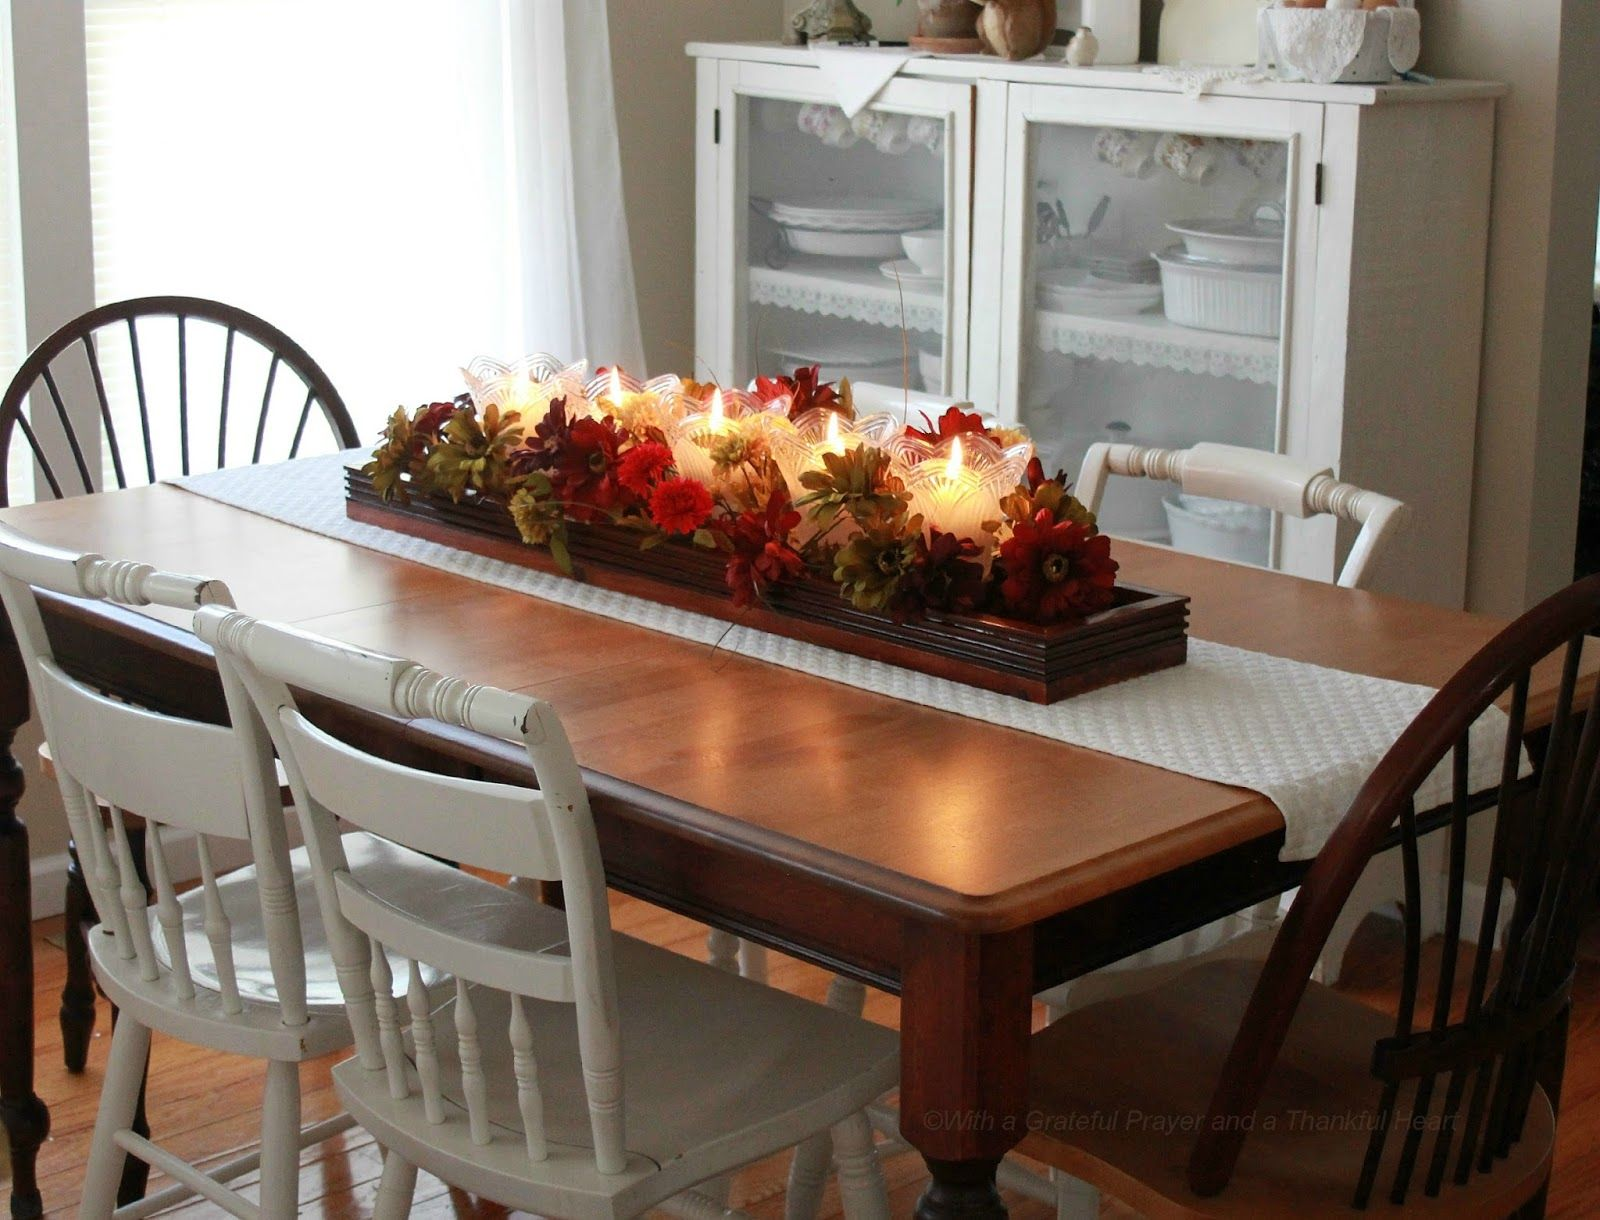 Centerpiece Ideas For Dining Room Table: Centerpiece From Re-Purposed Globes